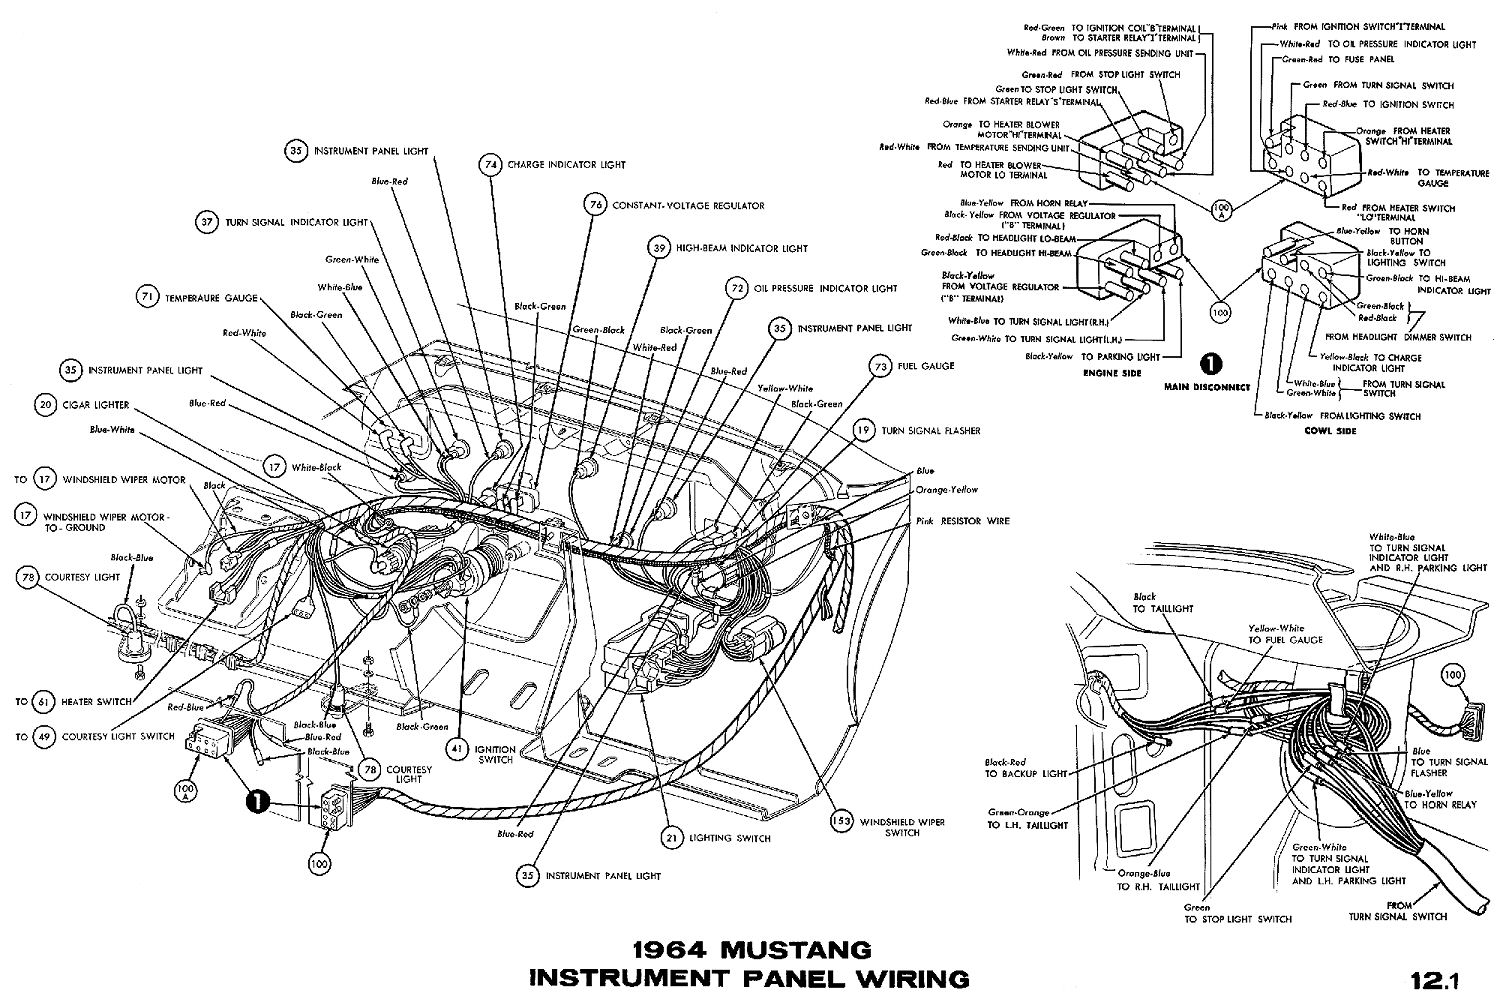 1964b 1969 mustang wiring diagram 1969 ranchero wiring diagram \u2022 wiring 1969 mustang alternator wiring diagram at n-0.co